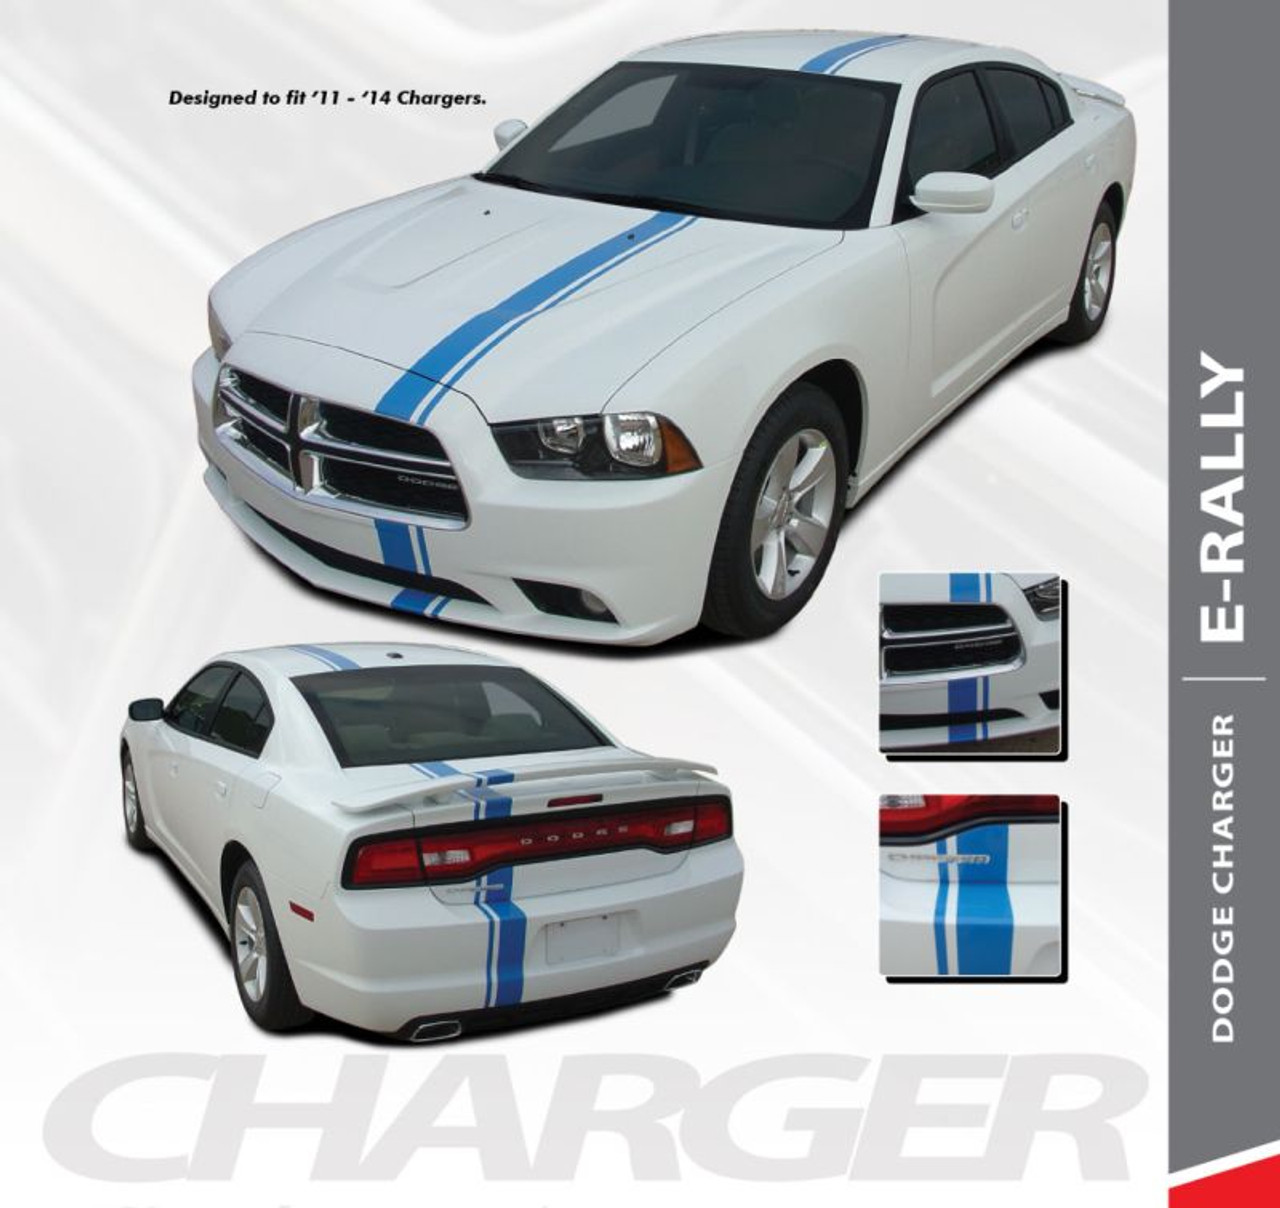 Euro Rally Dodge Charger Stripes Charger Decals Charger Vinyl Graphics